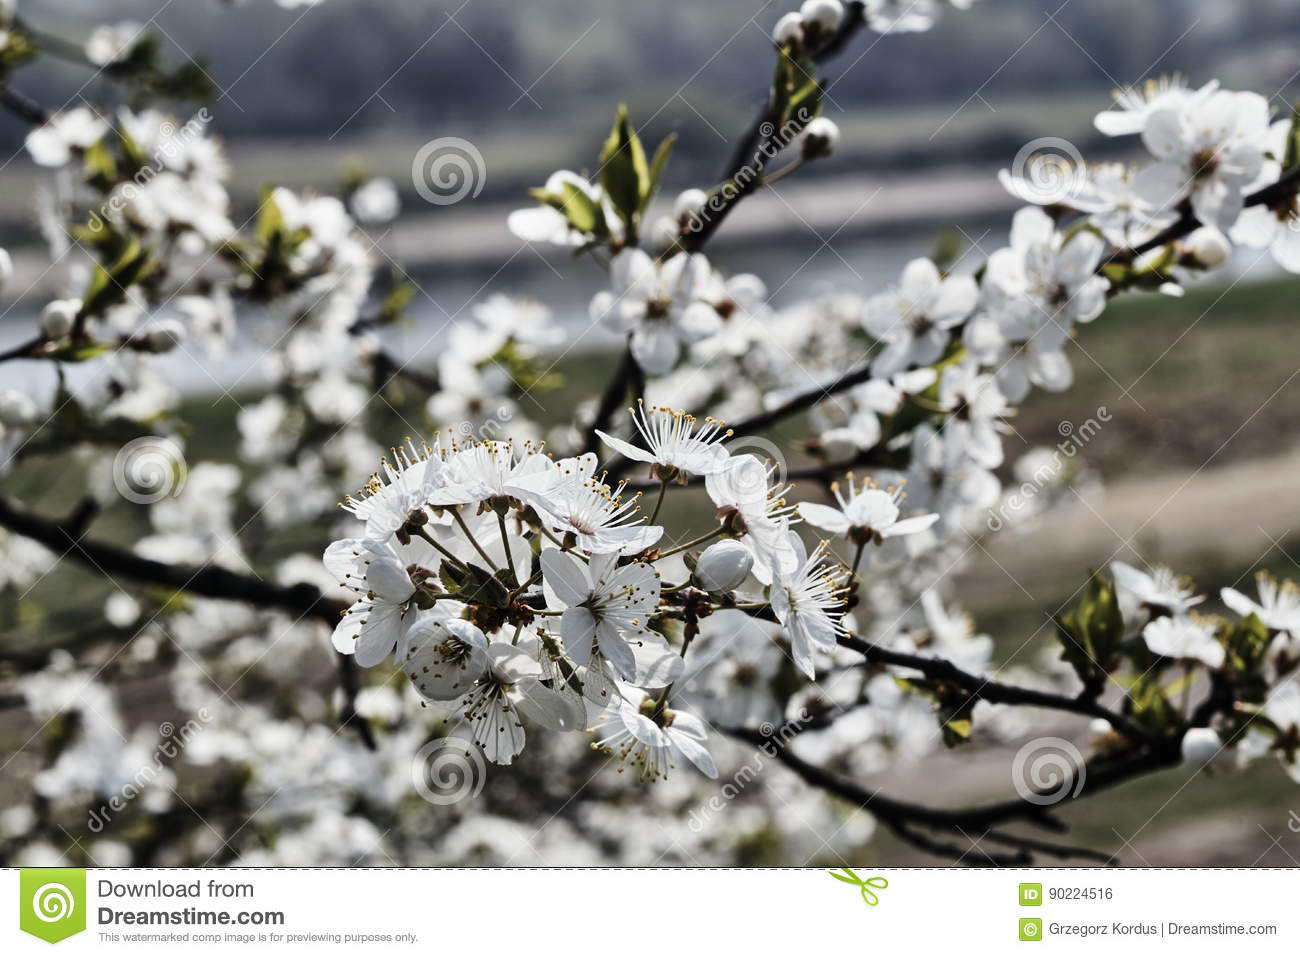 Small white flowers on a tree stock photo image of nature flora download small white flowers on a tree stock photo image of nature flora mightylinksfo